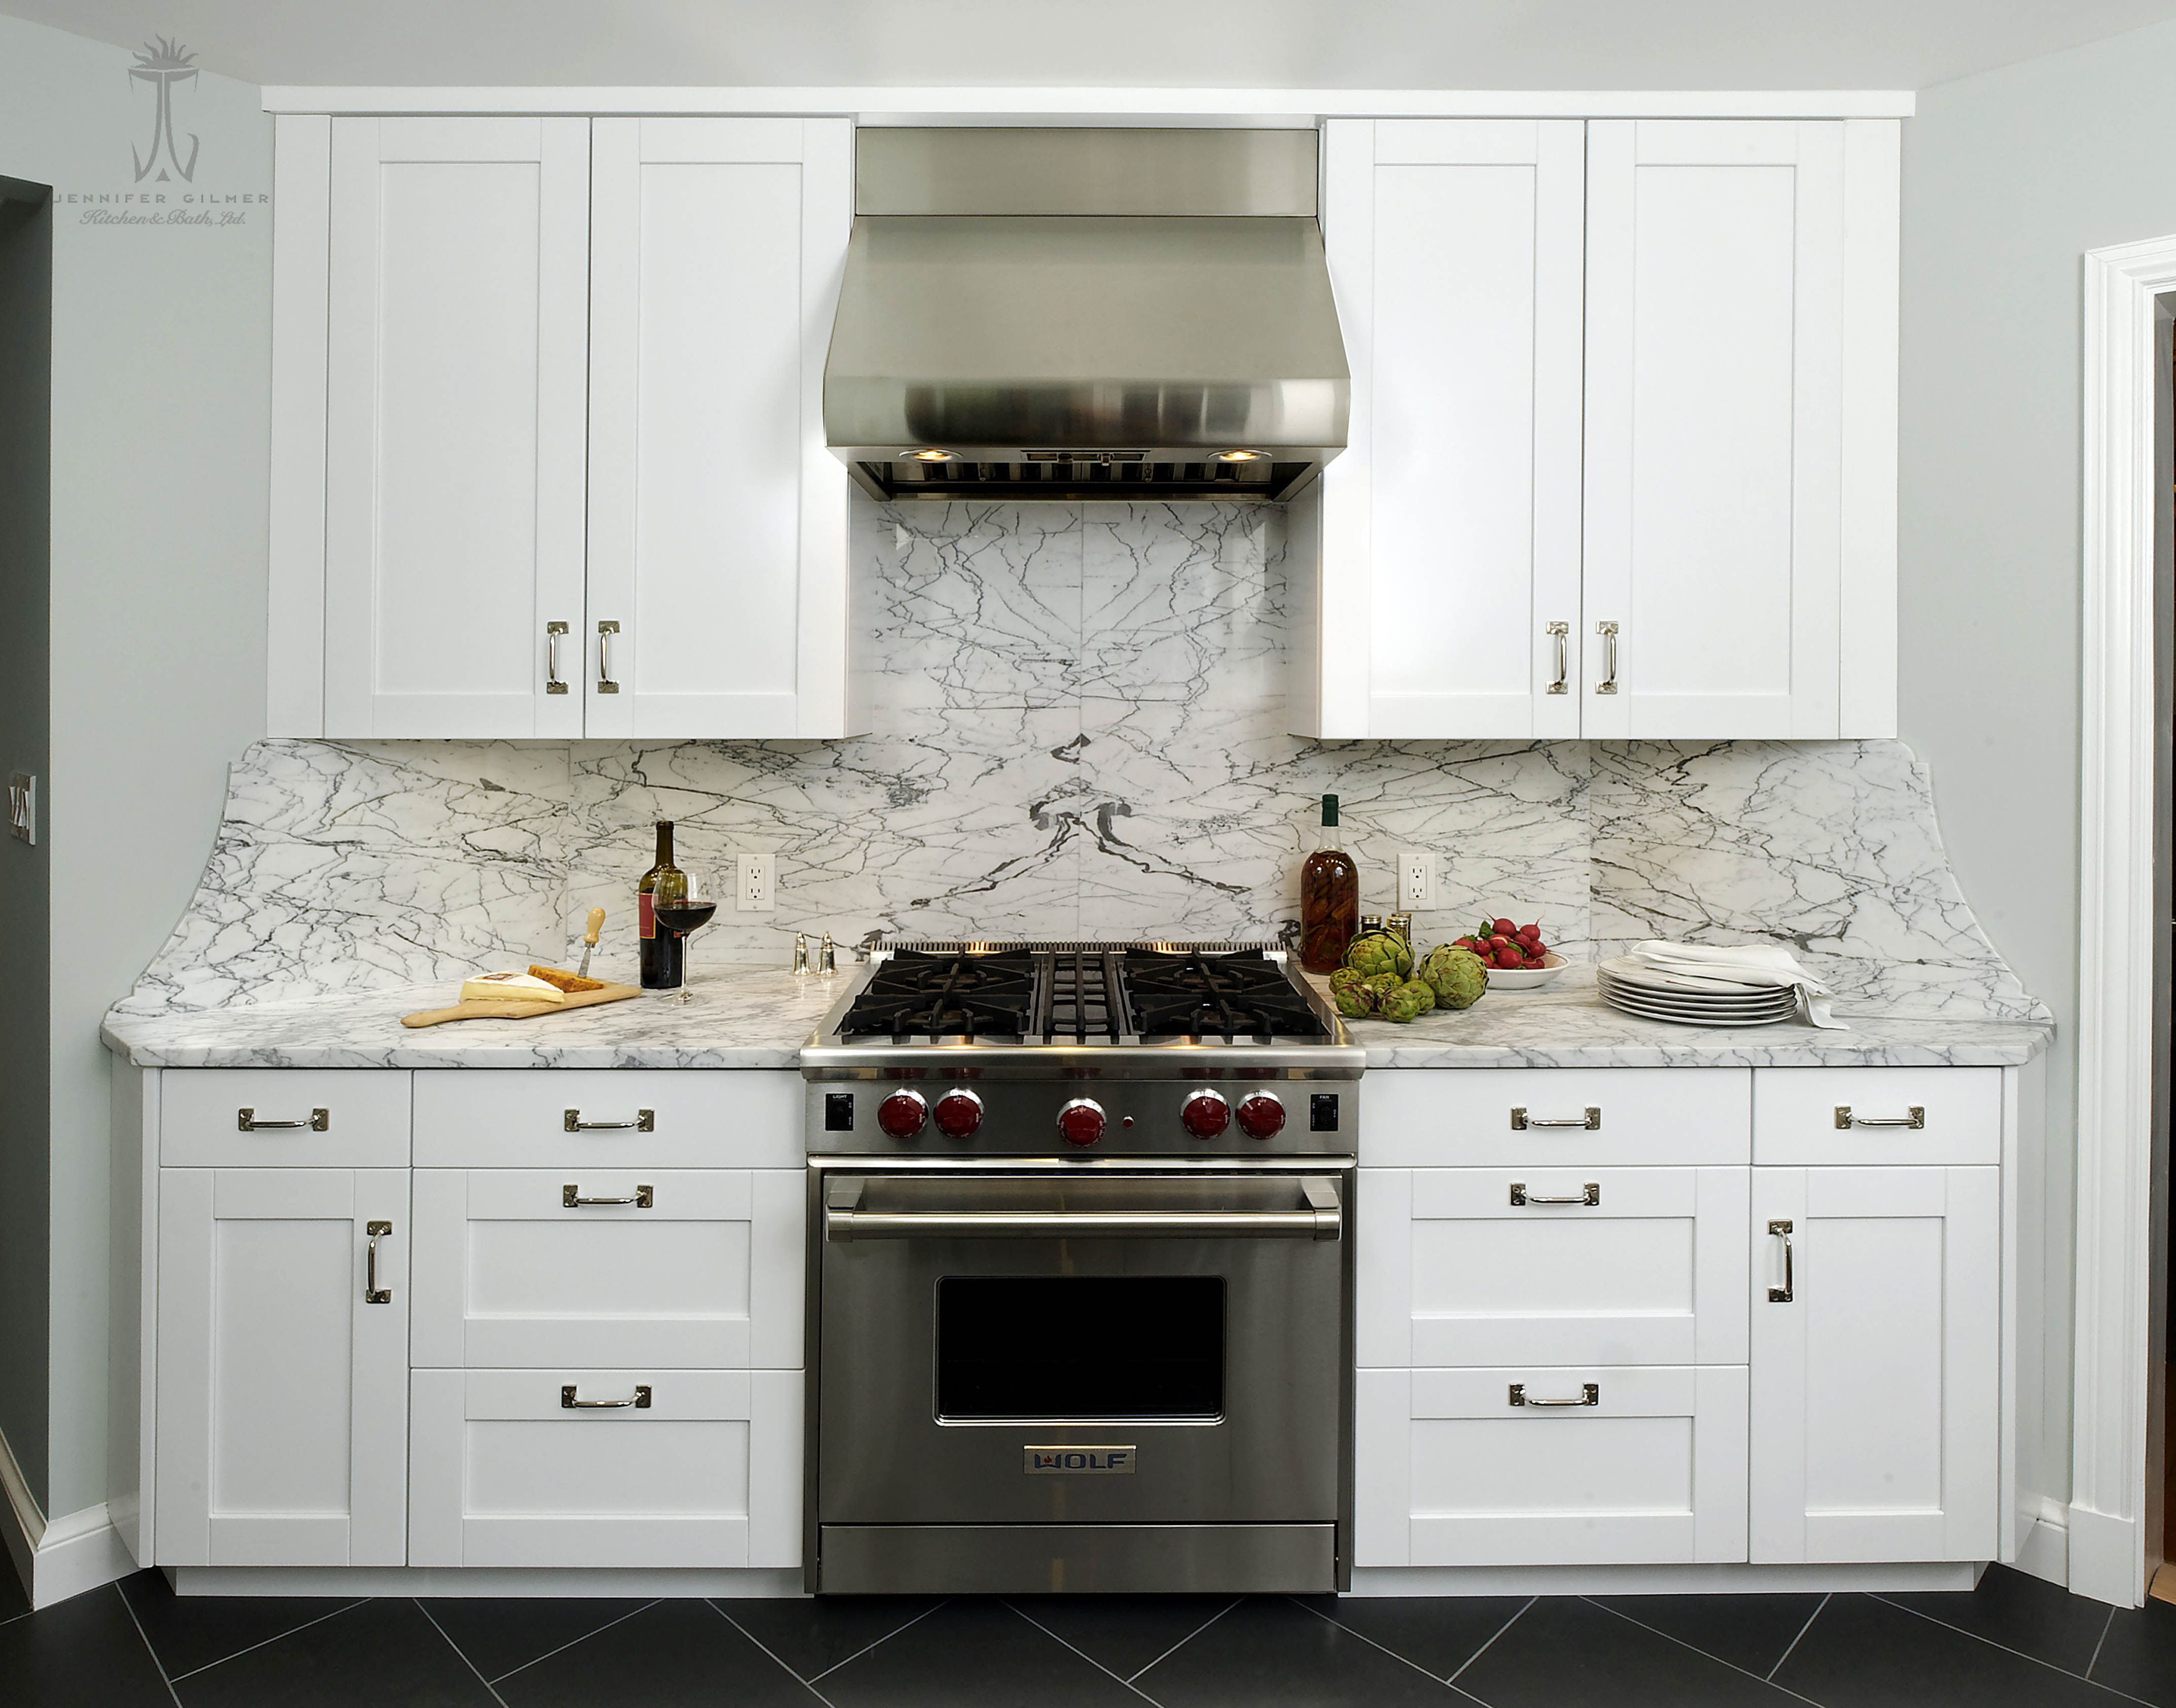 Design by Jennifer Gilmer Kitchen & Bath in Washington DC includes ...